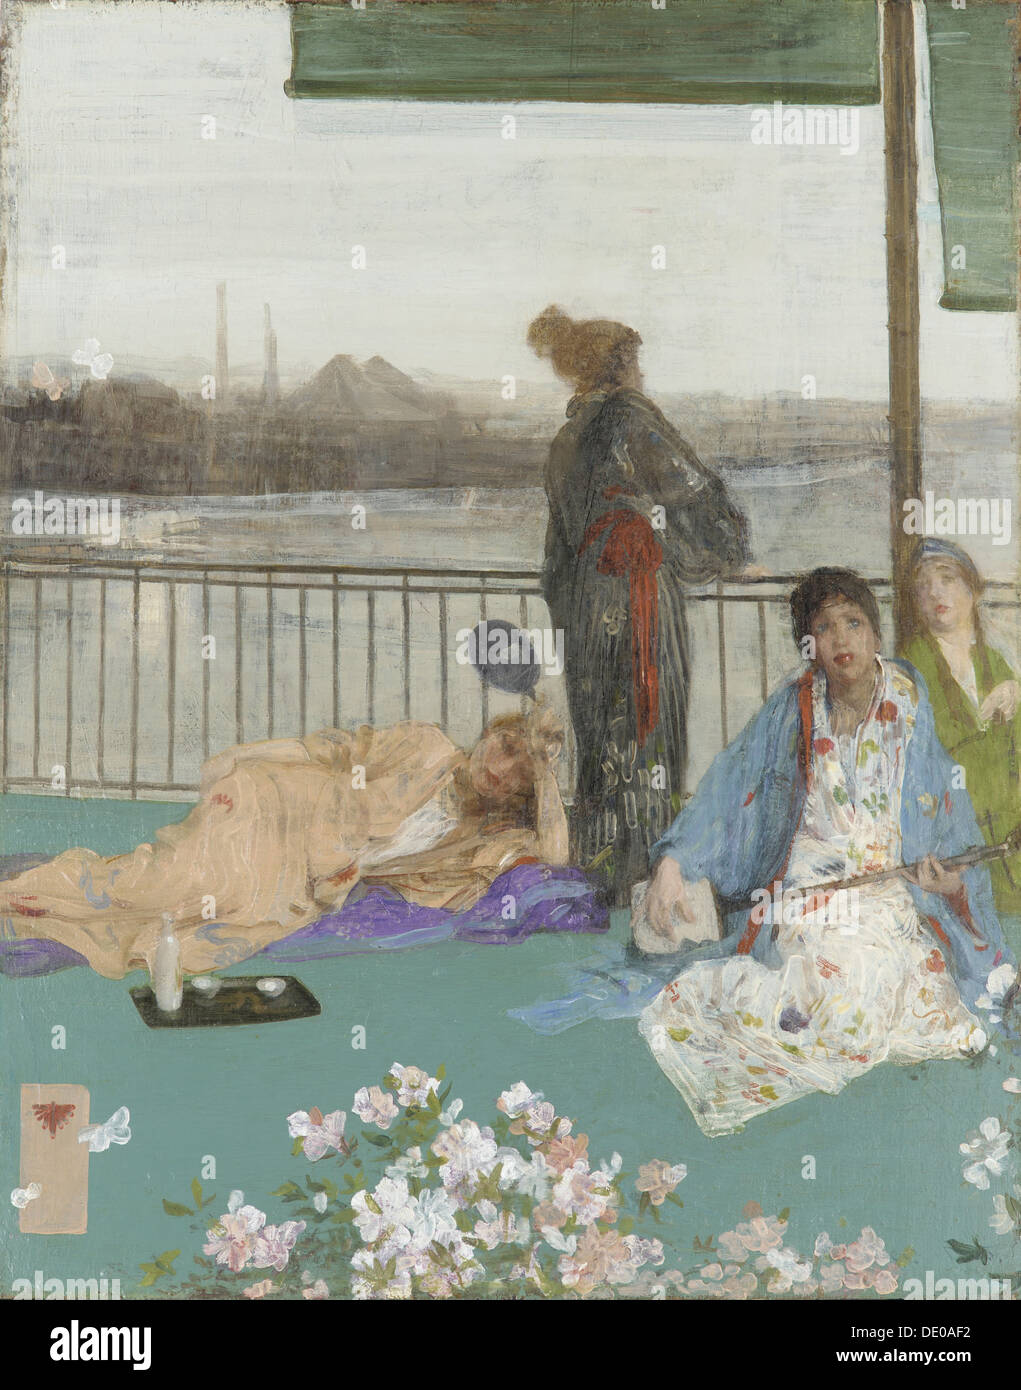 Variations in Flesh Colour and Green: The Balcony, c. 1870. Artist: Whistler, James Abbott McNeill (1834-1903) - Stock Image